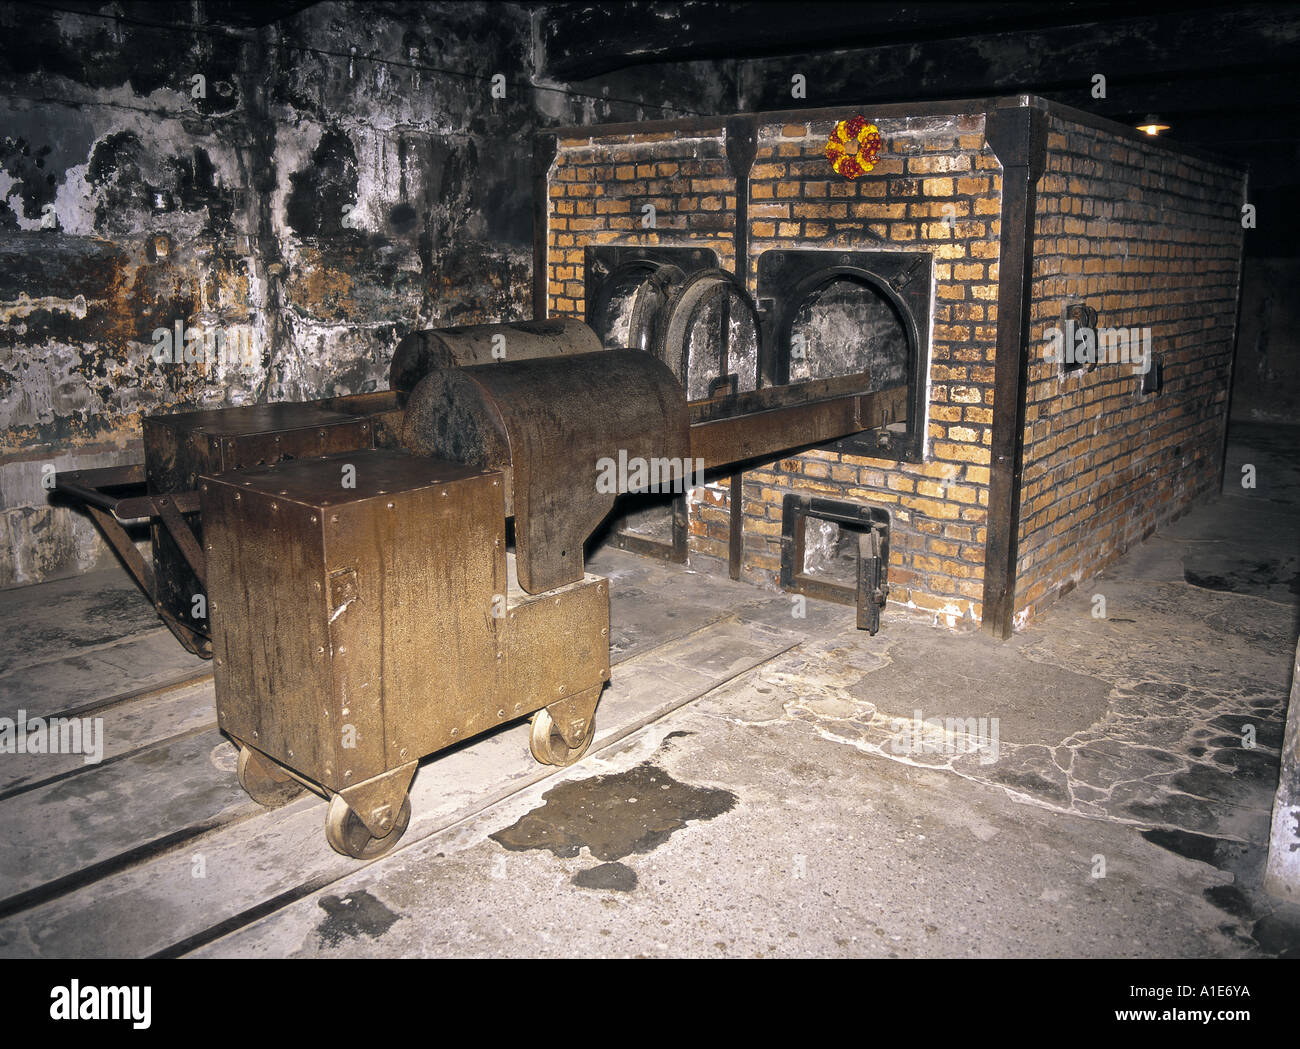 gas chamber ovens at auschwitz concentration camp in